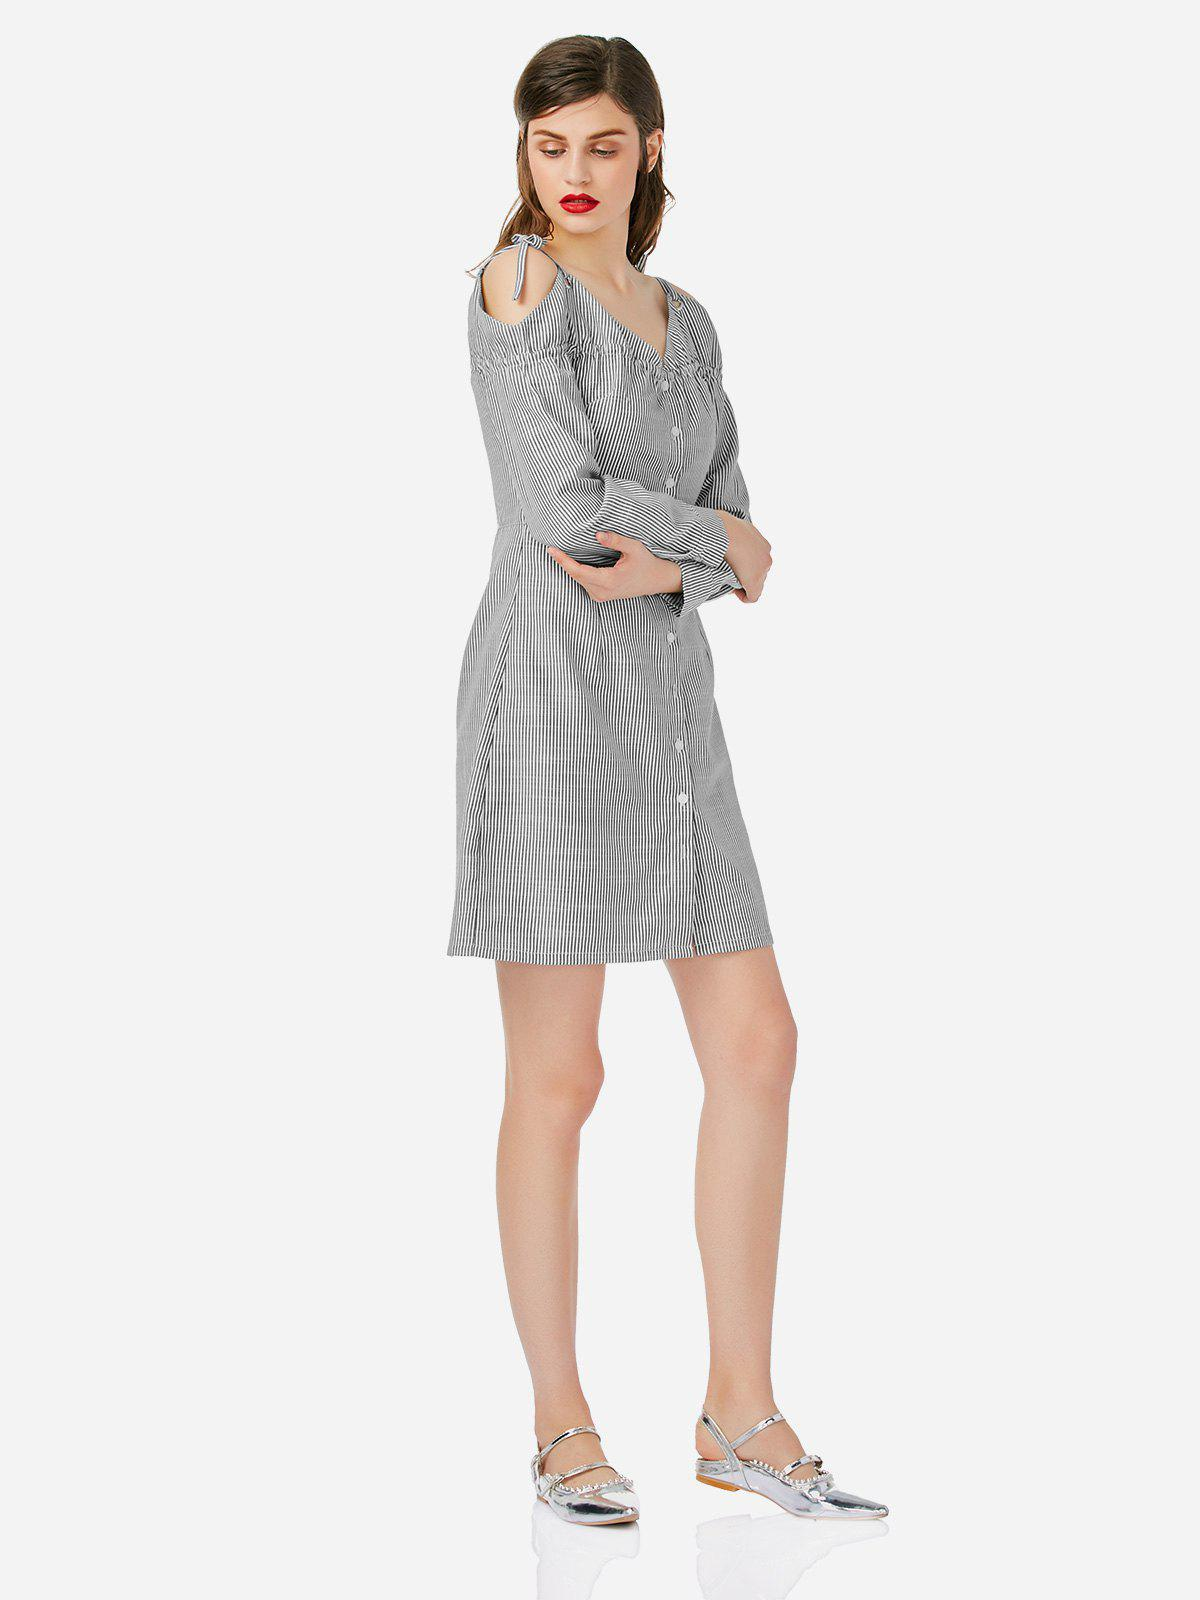 ZAN.STYLE Off Shoulder Shirt Dress - GRAY/WHITE S